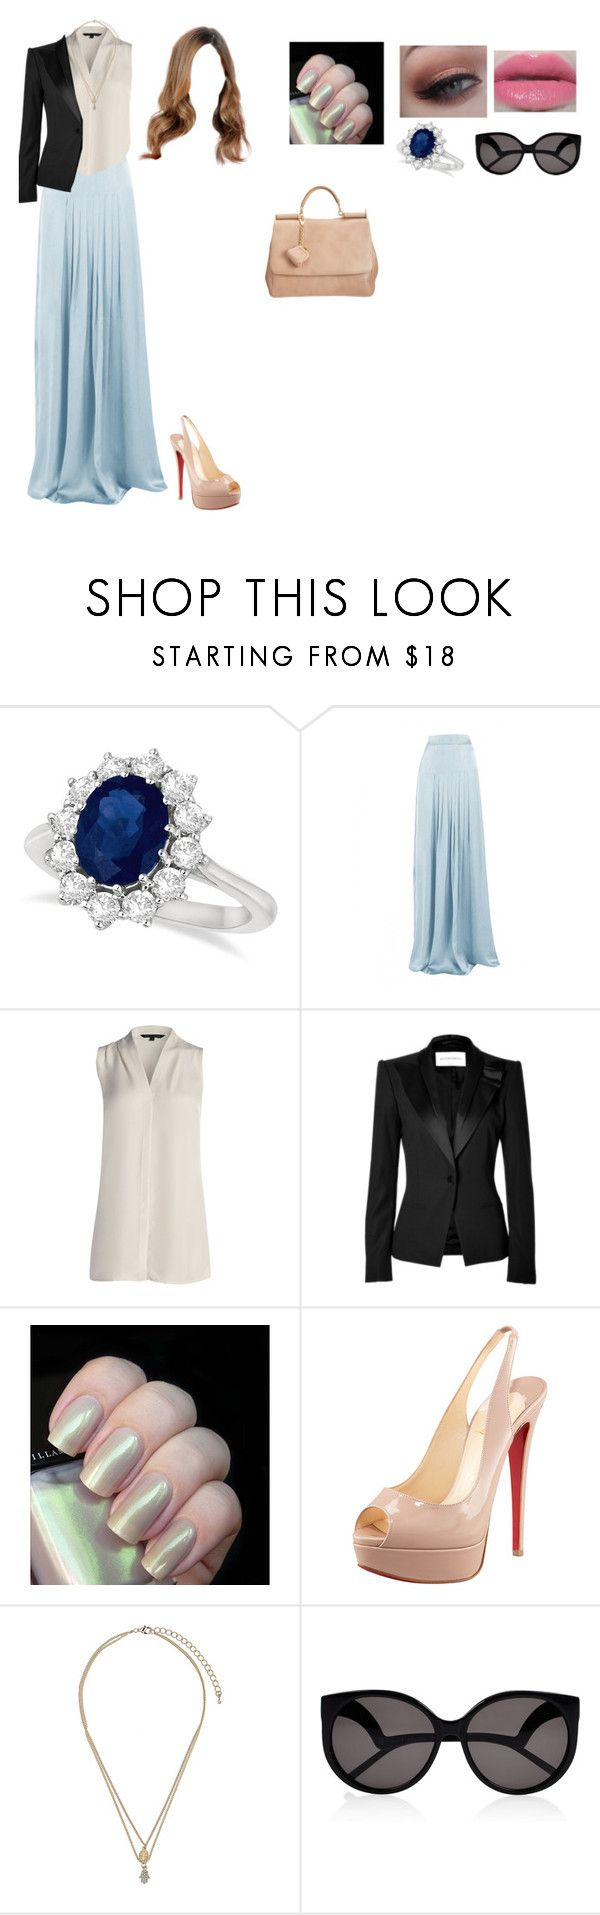 """Sans titre #118"" by julie-tomas ❤ liked on Polyvore featuring Allurez, Matthew Williamson, NIC+ZOE, Viktor & Rolf, Urban Decay, Christian Louboutin, Topshop, House of Harlow 1960 and Dolce&Gabbana"